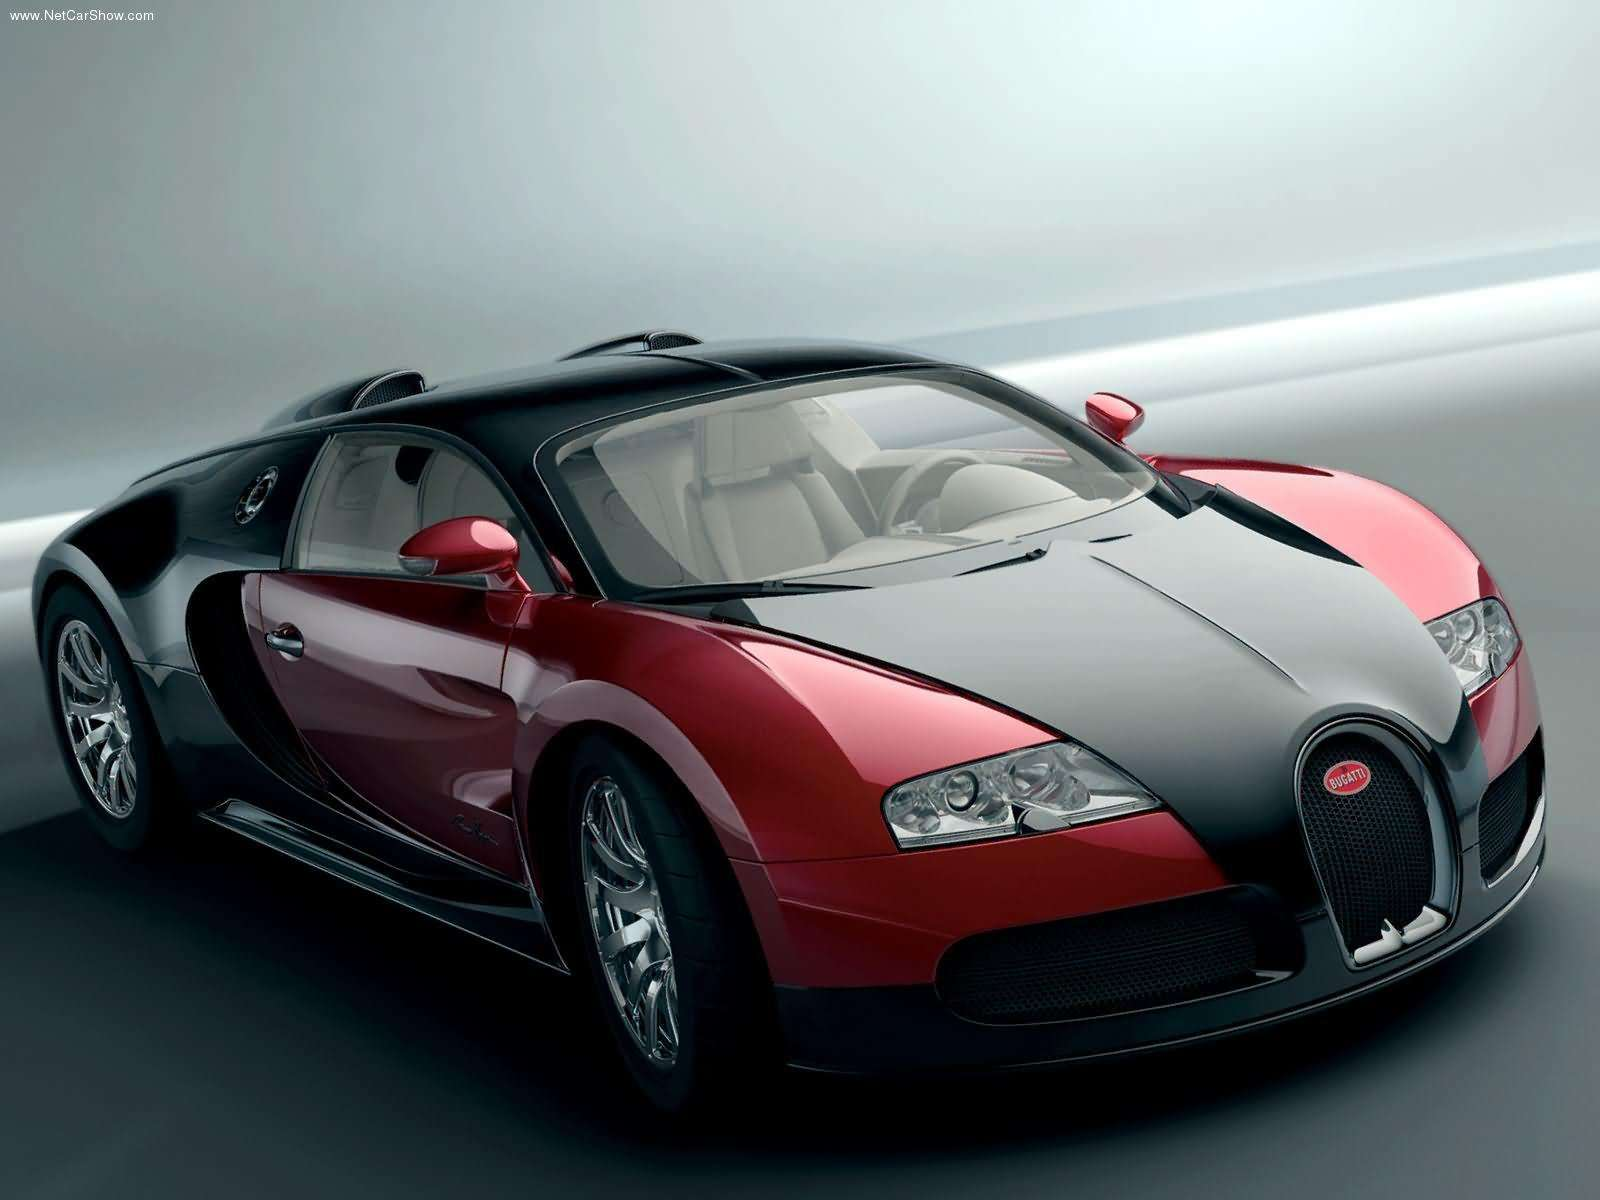 Bugatti Eb 16 4 Veyron Photos Photogallery With 78 Pics HD Wallpapers Download free images and photos [musssic.tk]